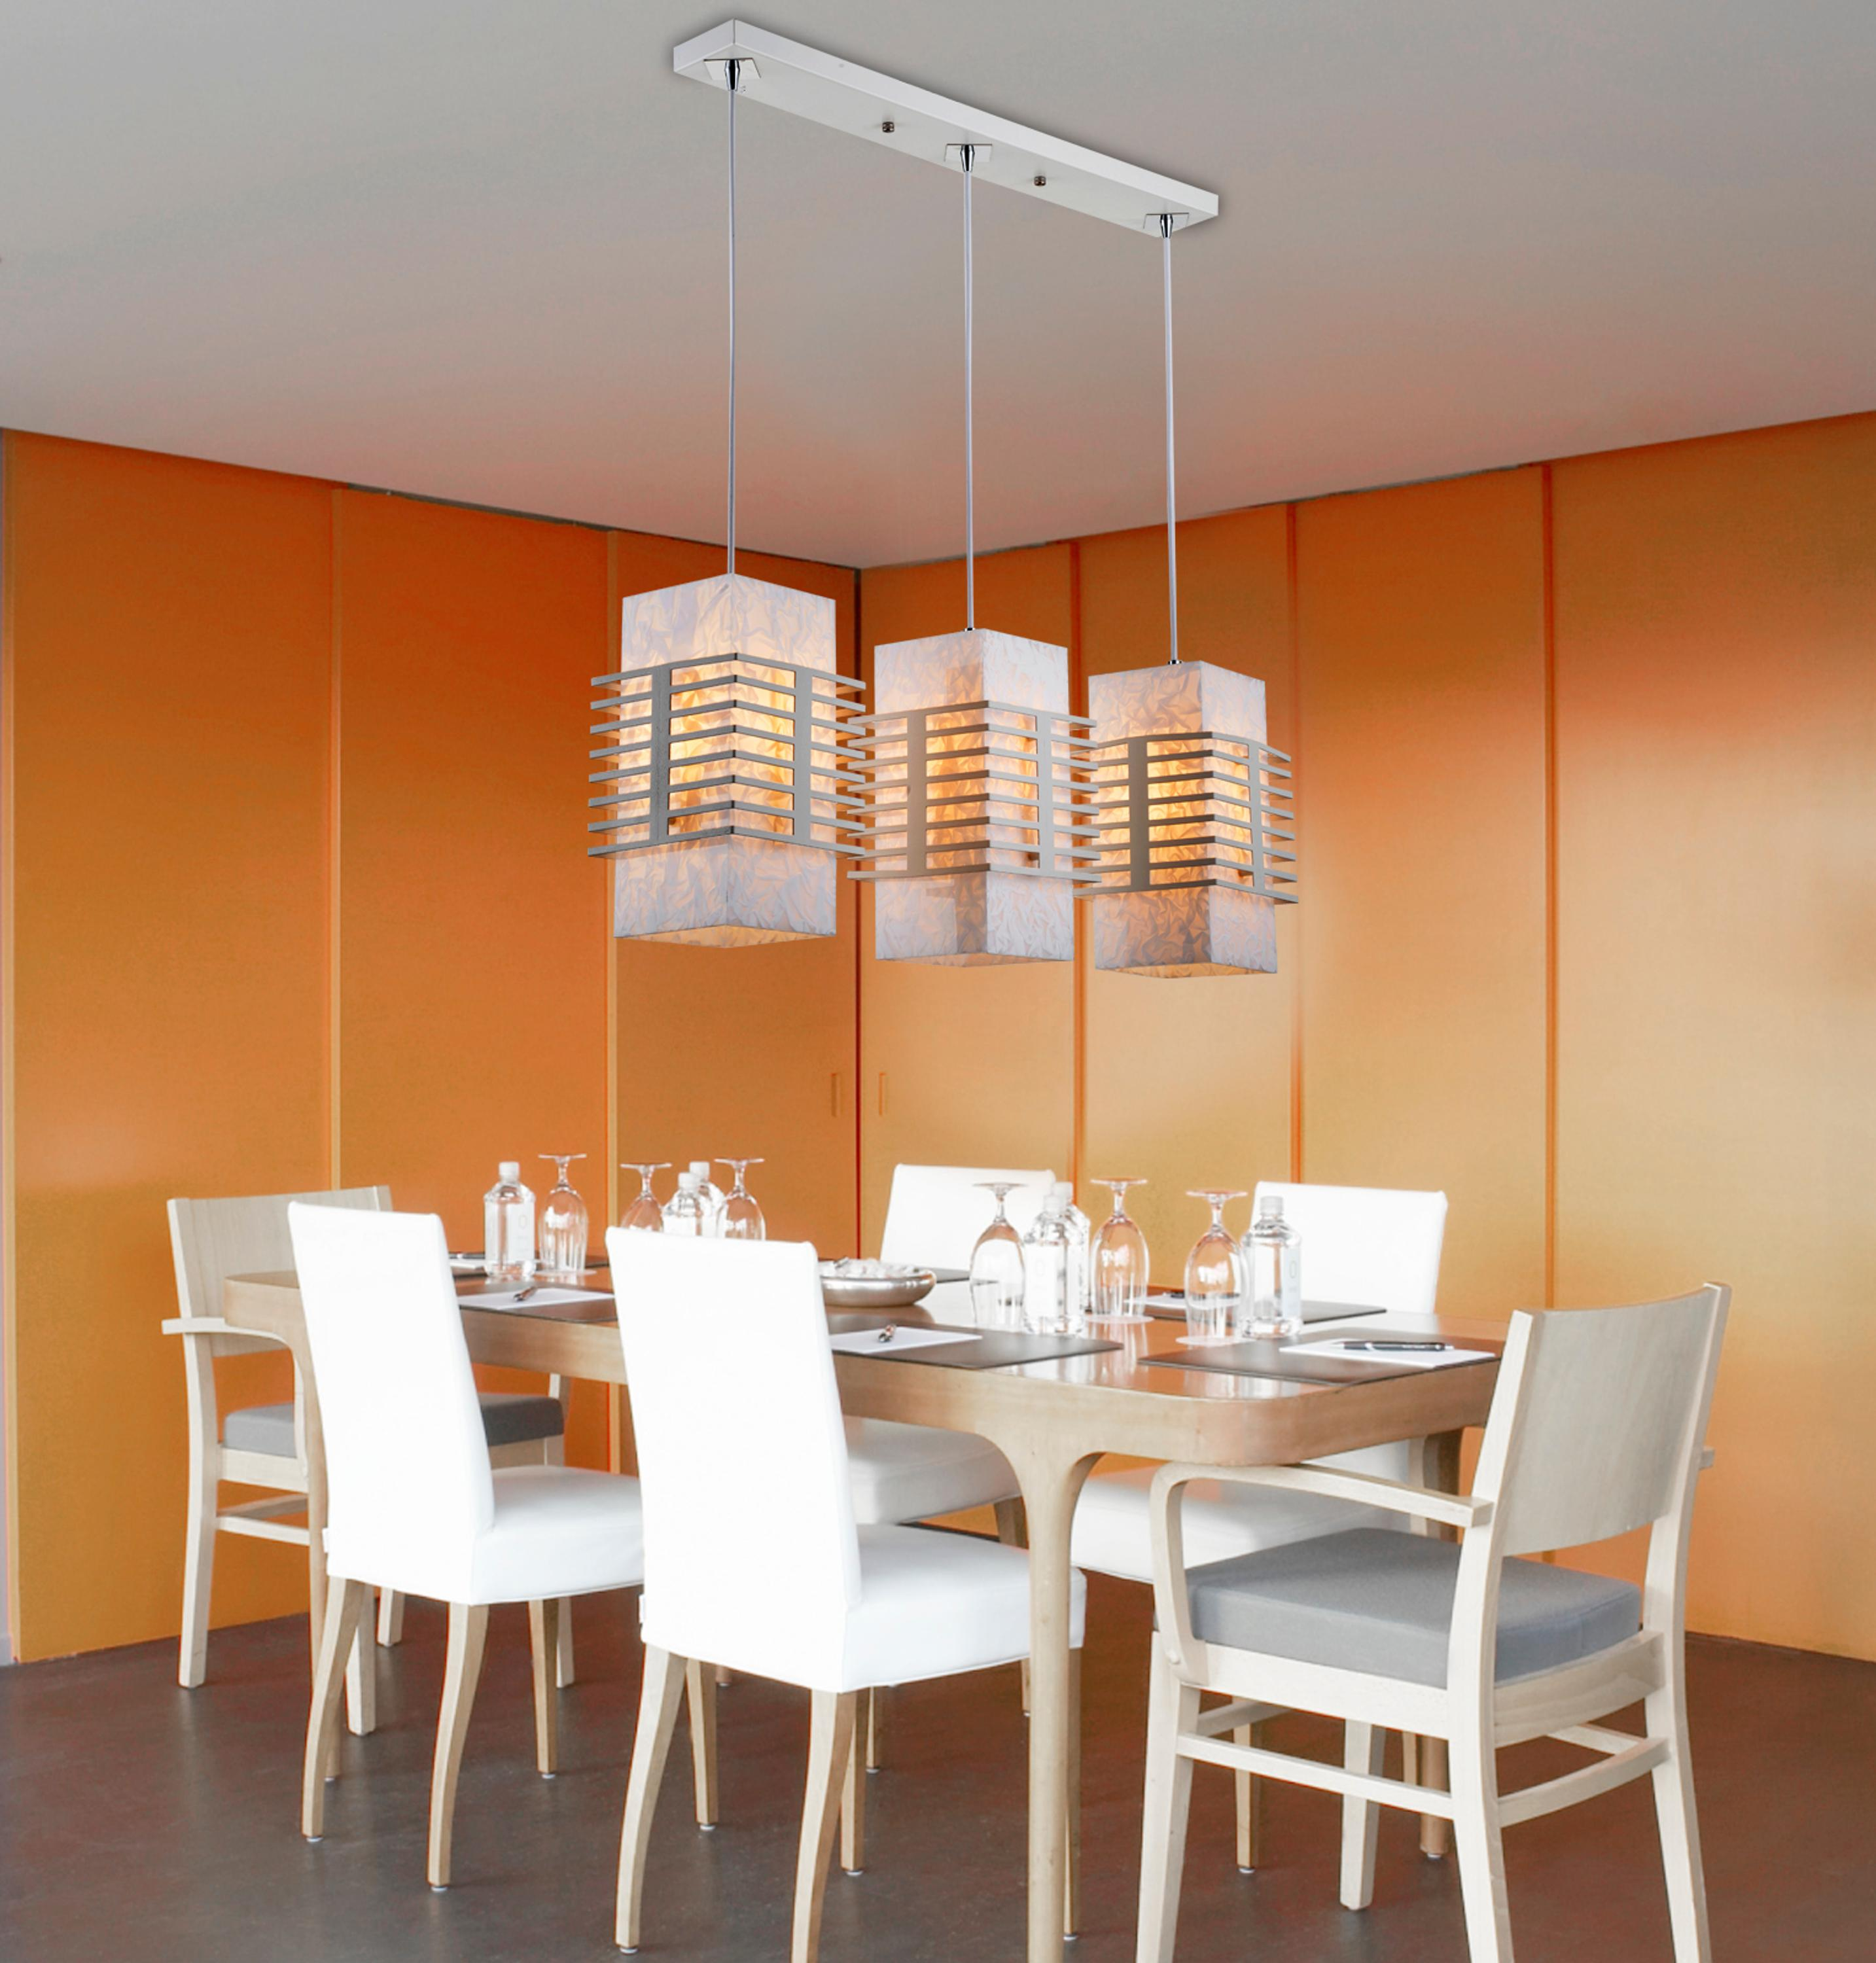 New designs indoor dining room decorative lamp acrylic modern LED hanging pendant light